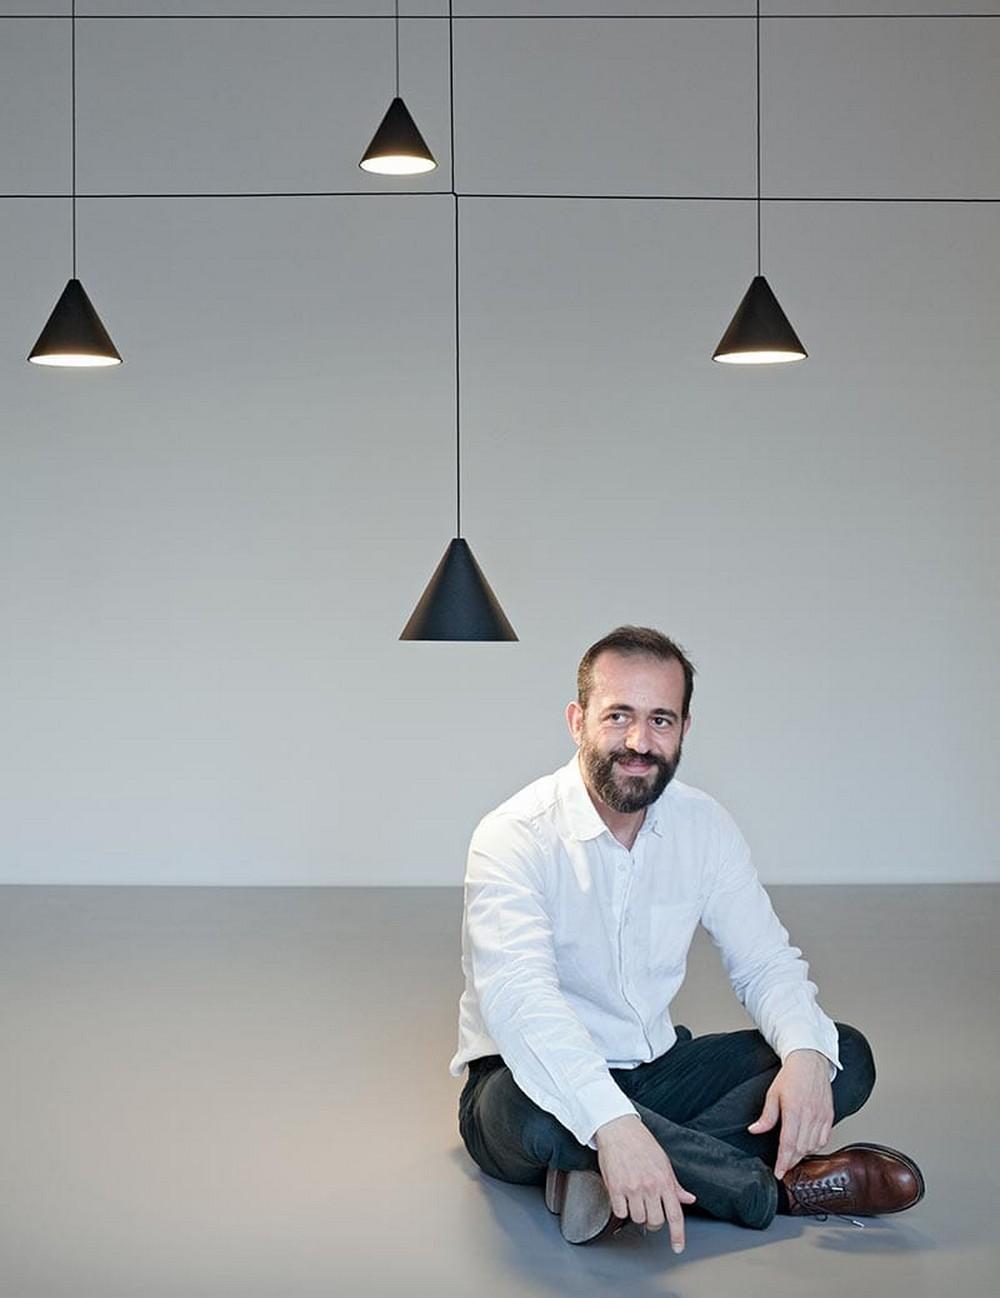 Maison Et Objet 2020 - Michael Anastassiades Is the Designer Of The Year michael anastassiades Maison Et Objet 2020 – Michael Anastassiades Is the Designer Of The Year Maison Et Objet 2020 Michael Anastassiades Is the Designer Of The Year